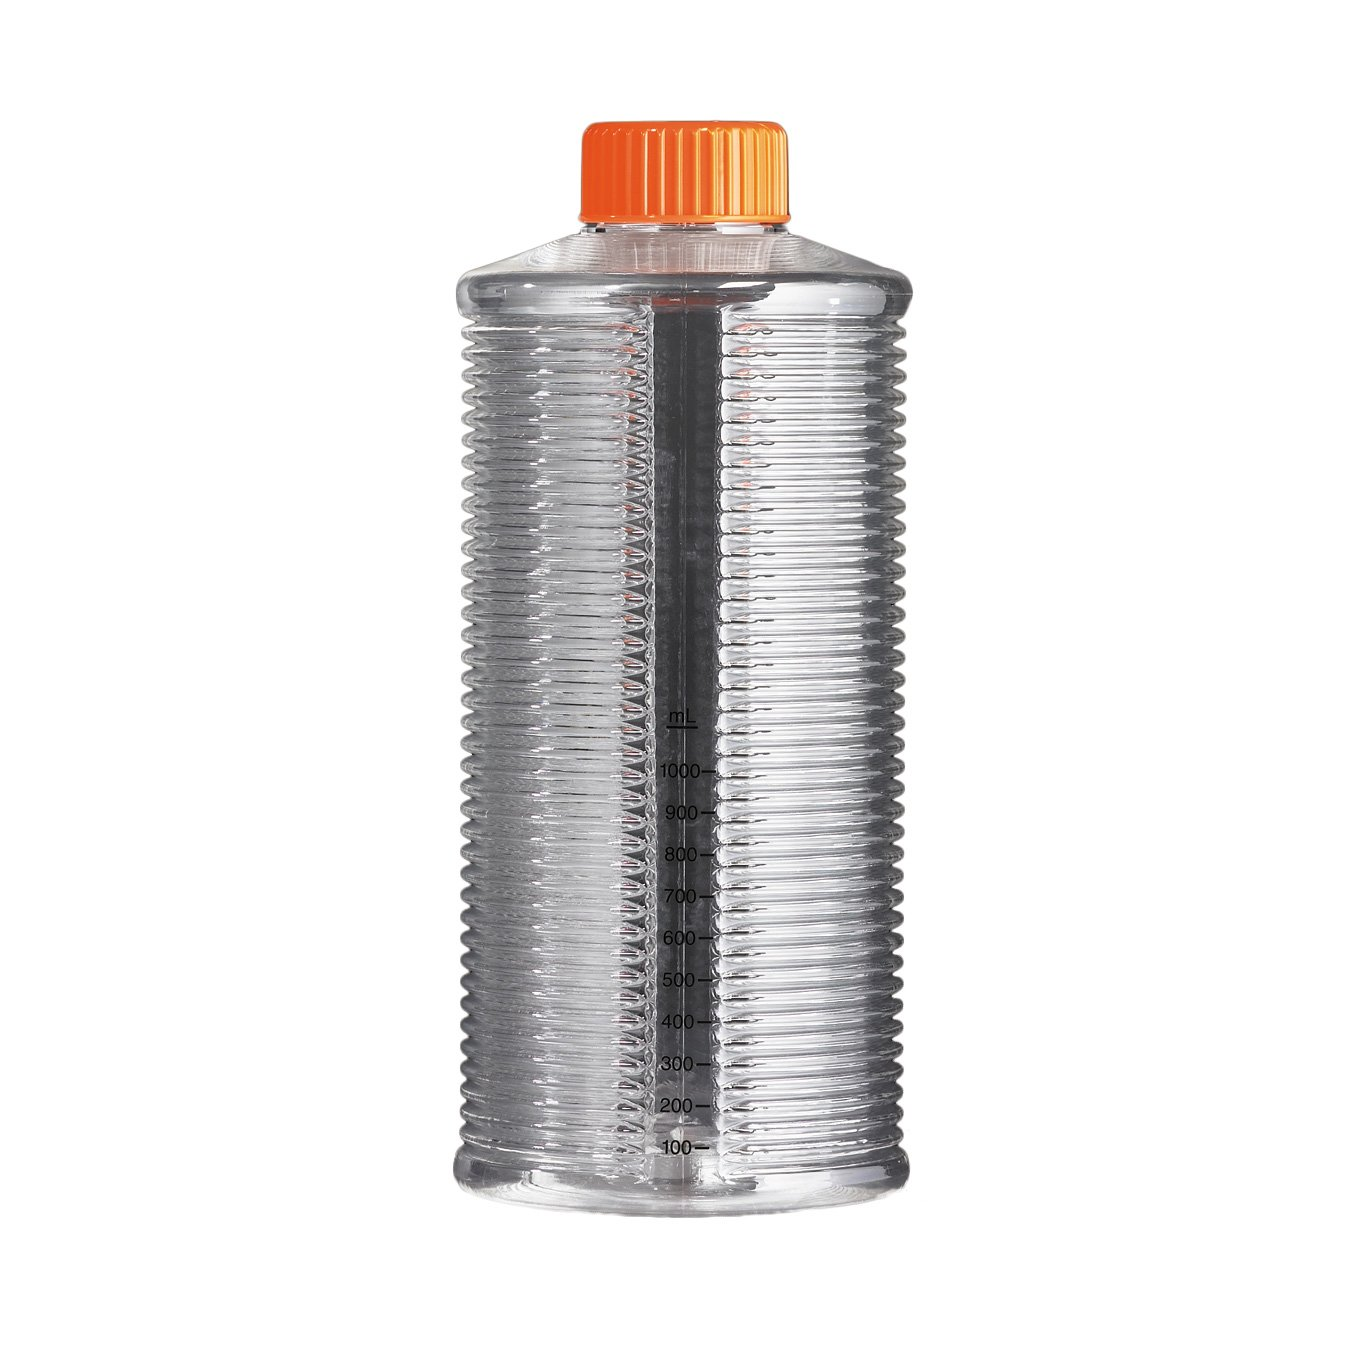 Corning 431321 Polystyrene Sterile Graduated Roller Bottle with Orange Easy Grip HDPE Cap (Case of 44 Bags, 22 per Bag)